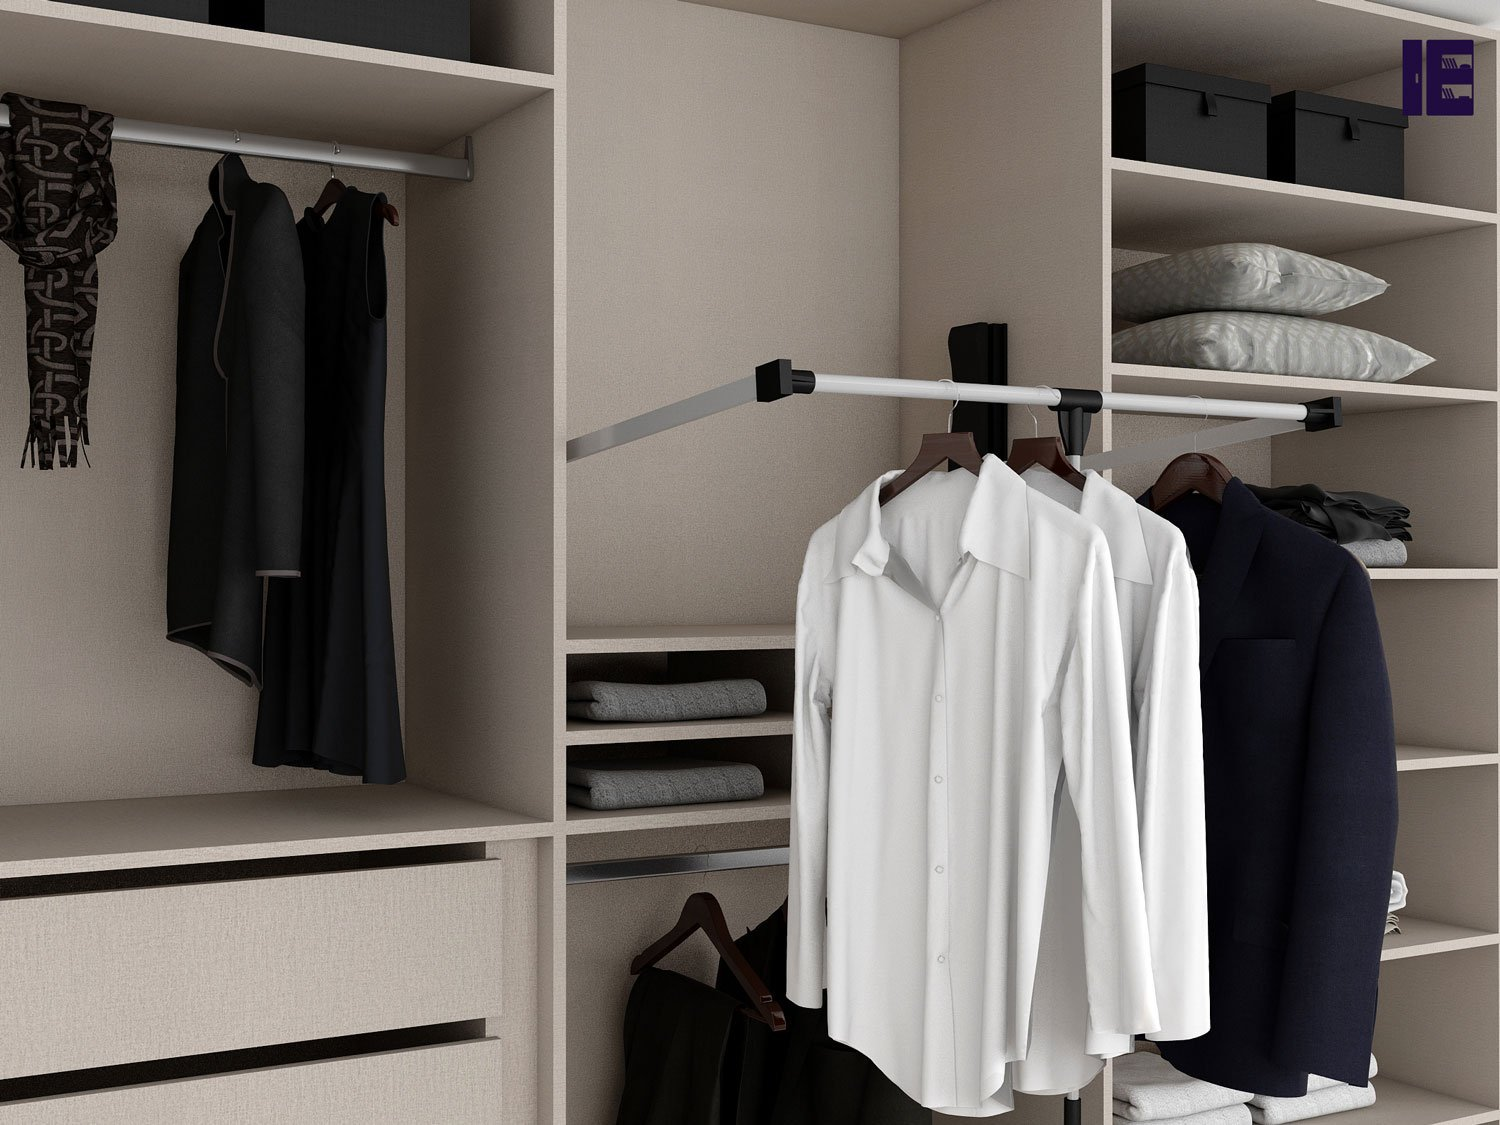 Pullout Hanging Rail Wardrobe Accessories